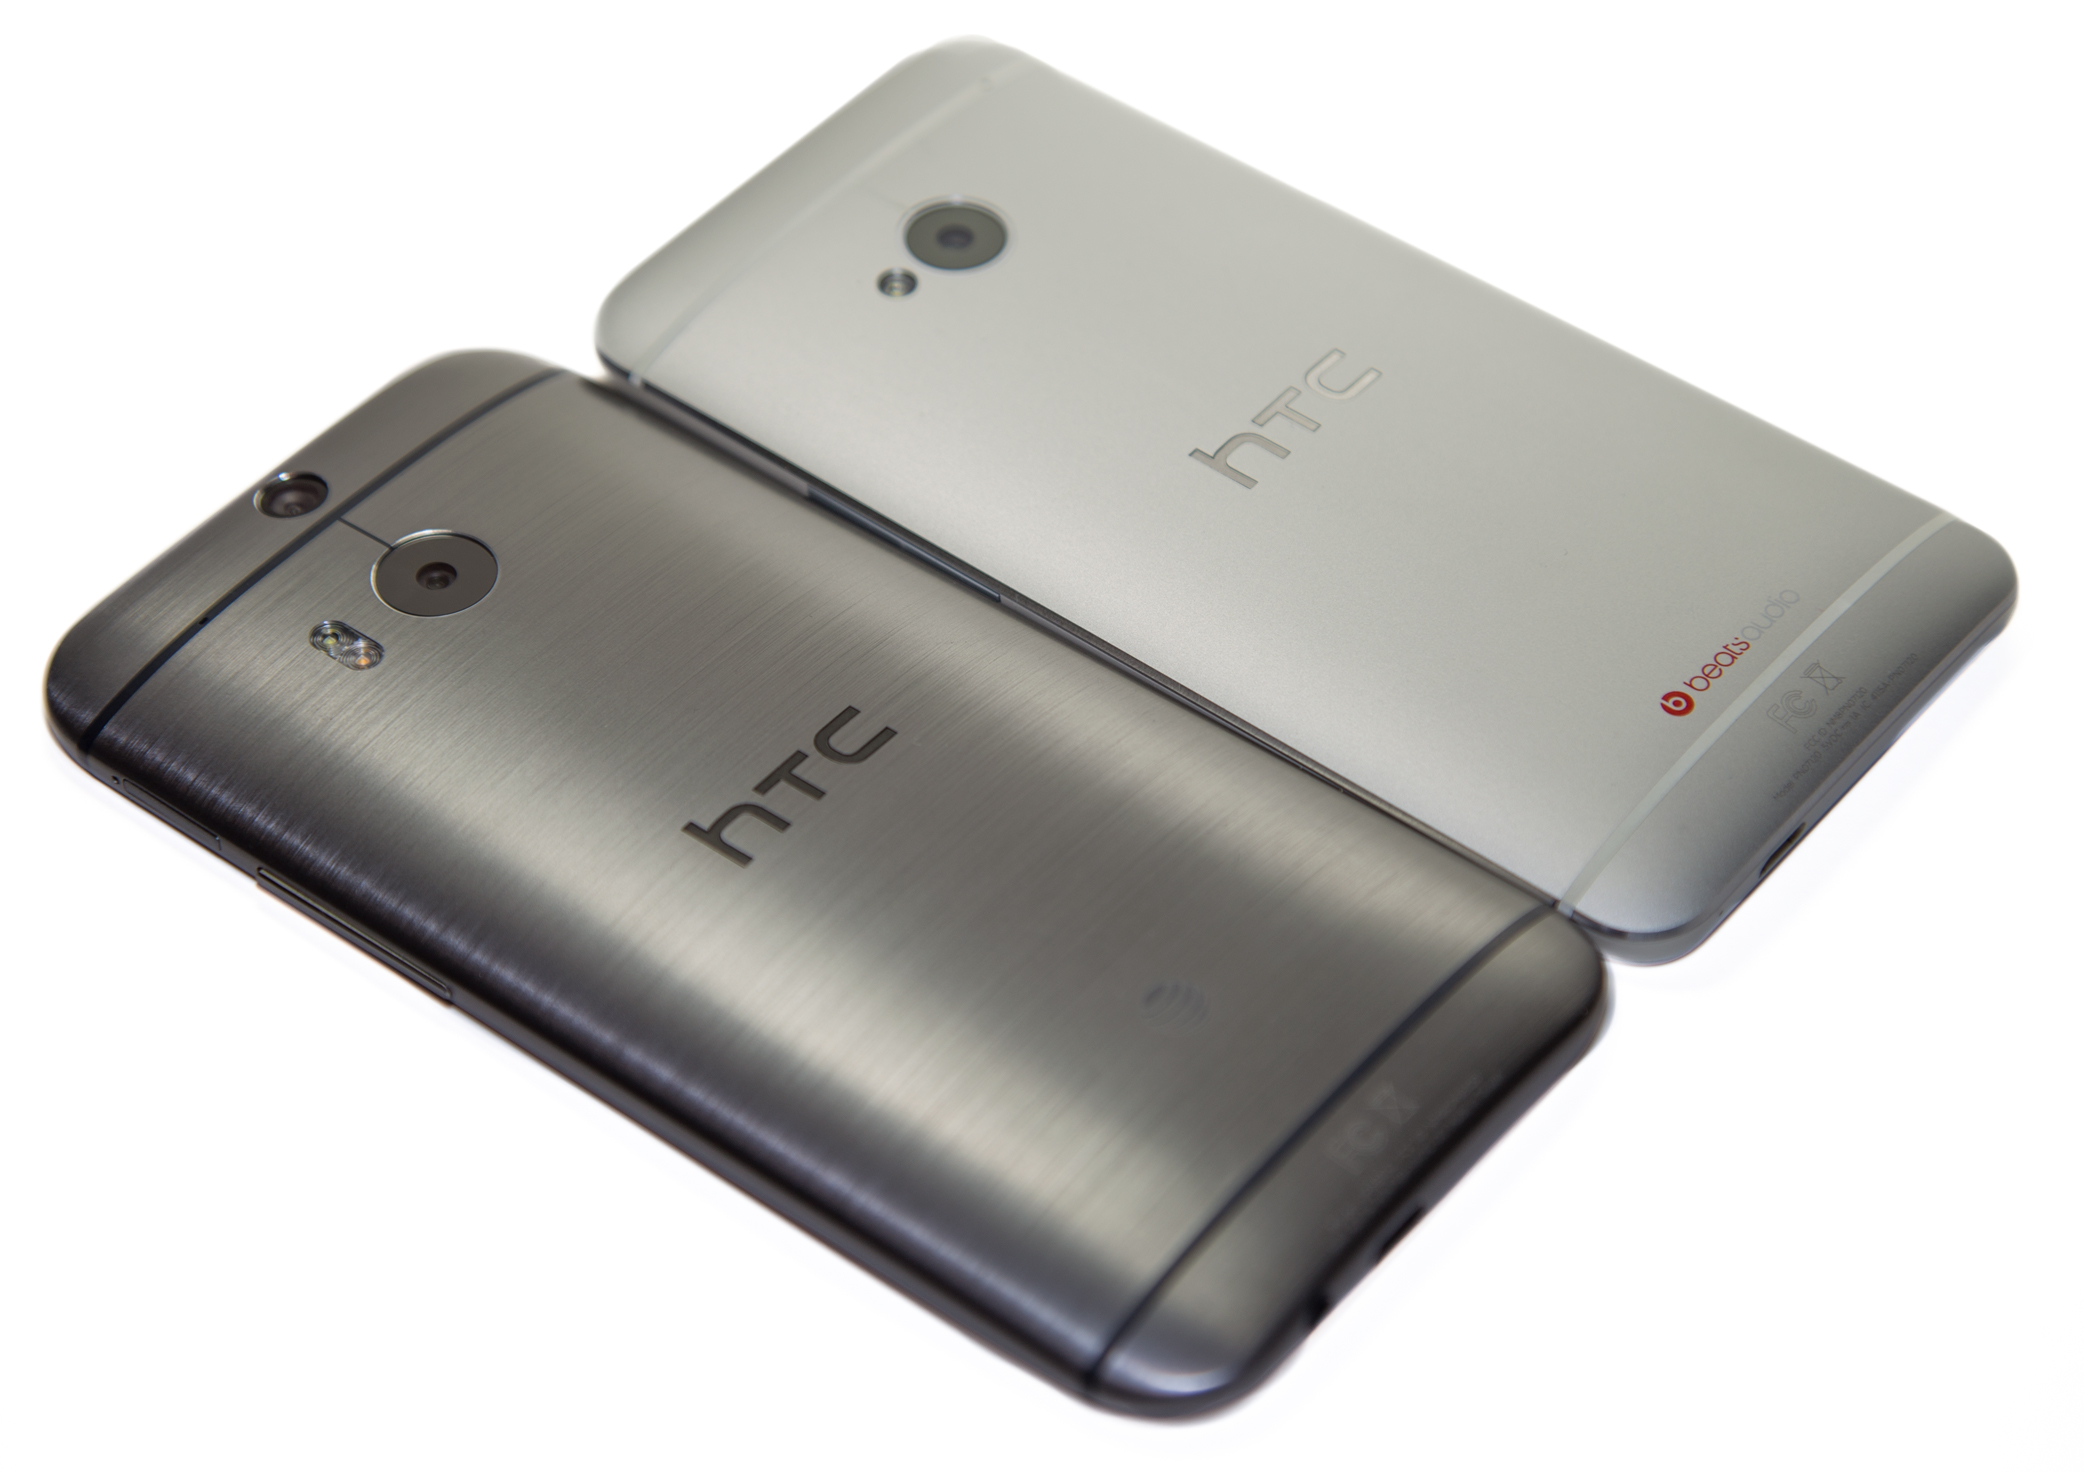 The HTC One M8 (bottom left) versus the HTC One M7 (top right).